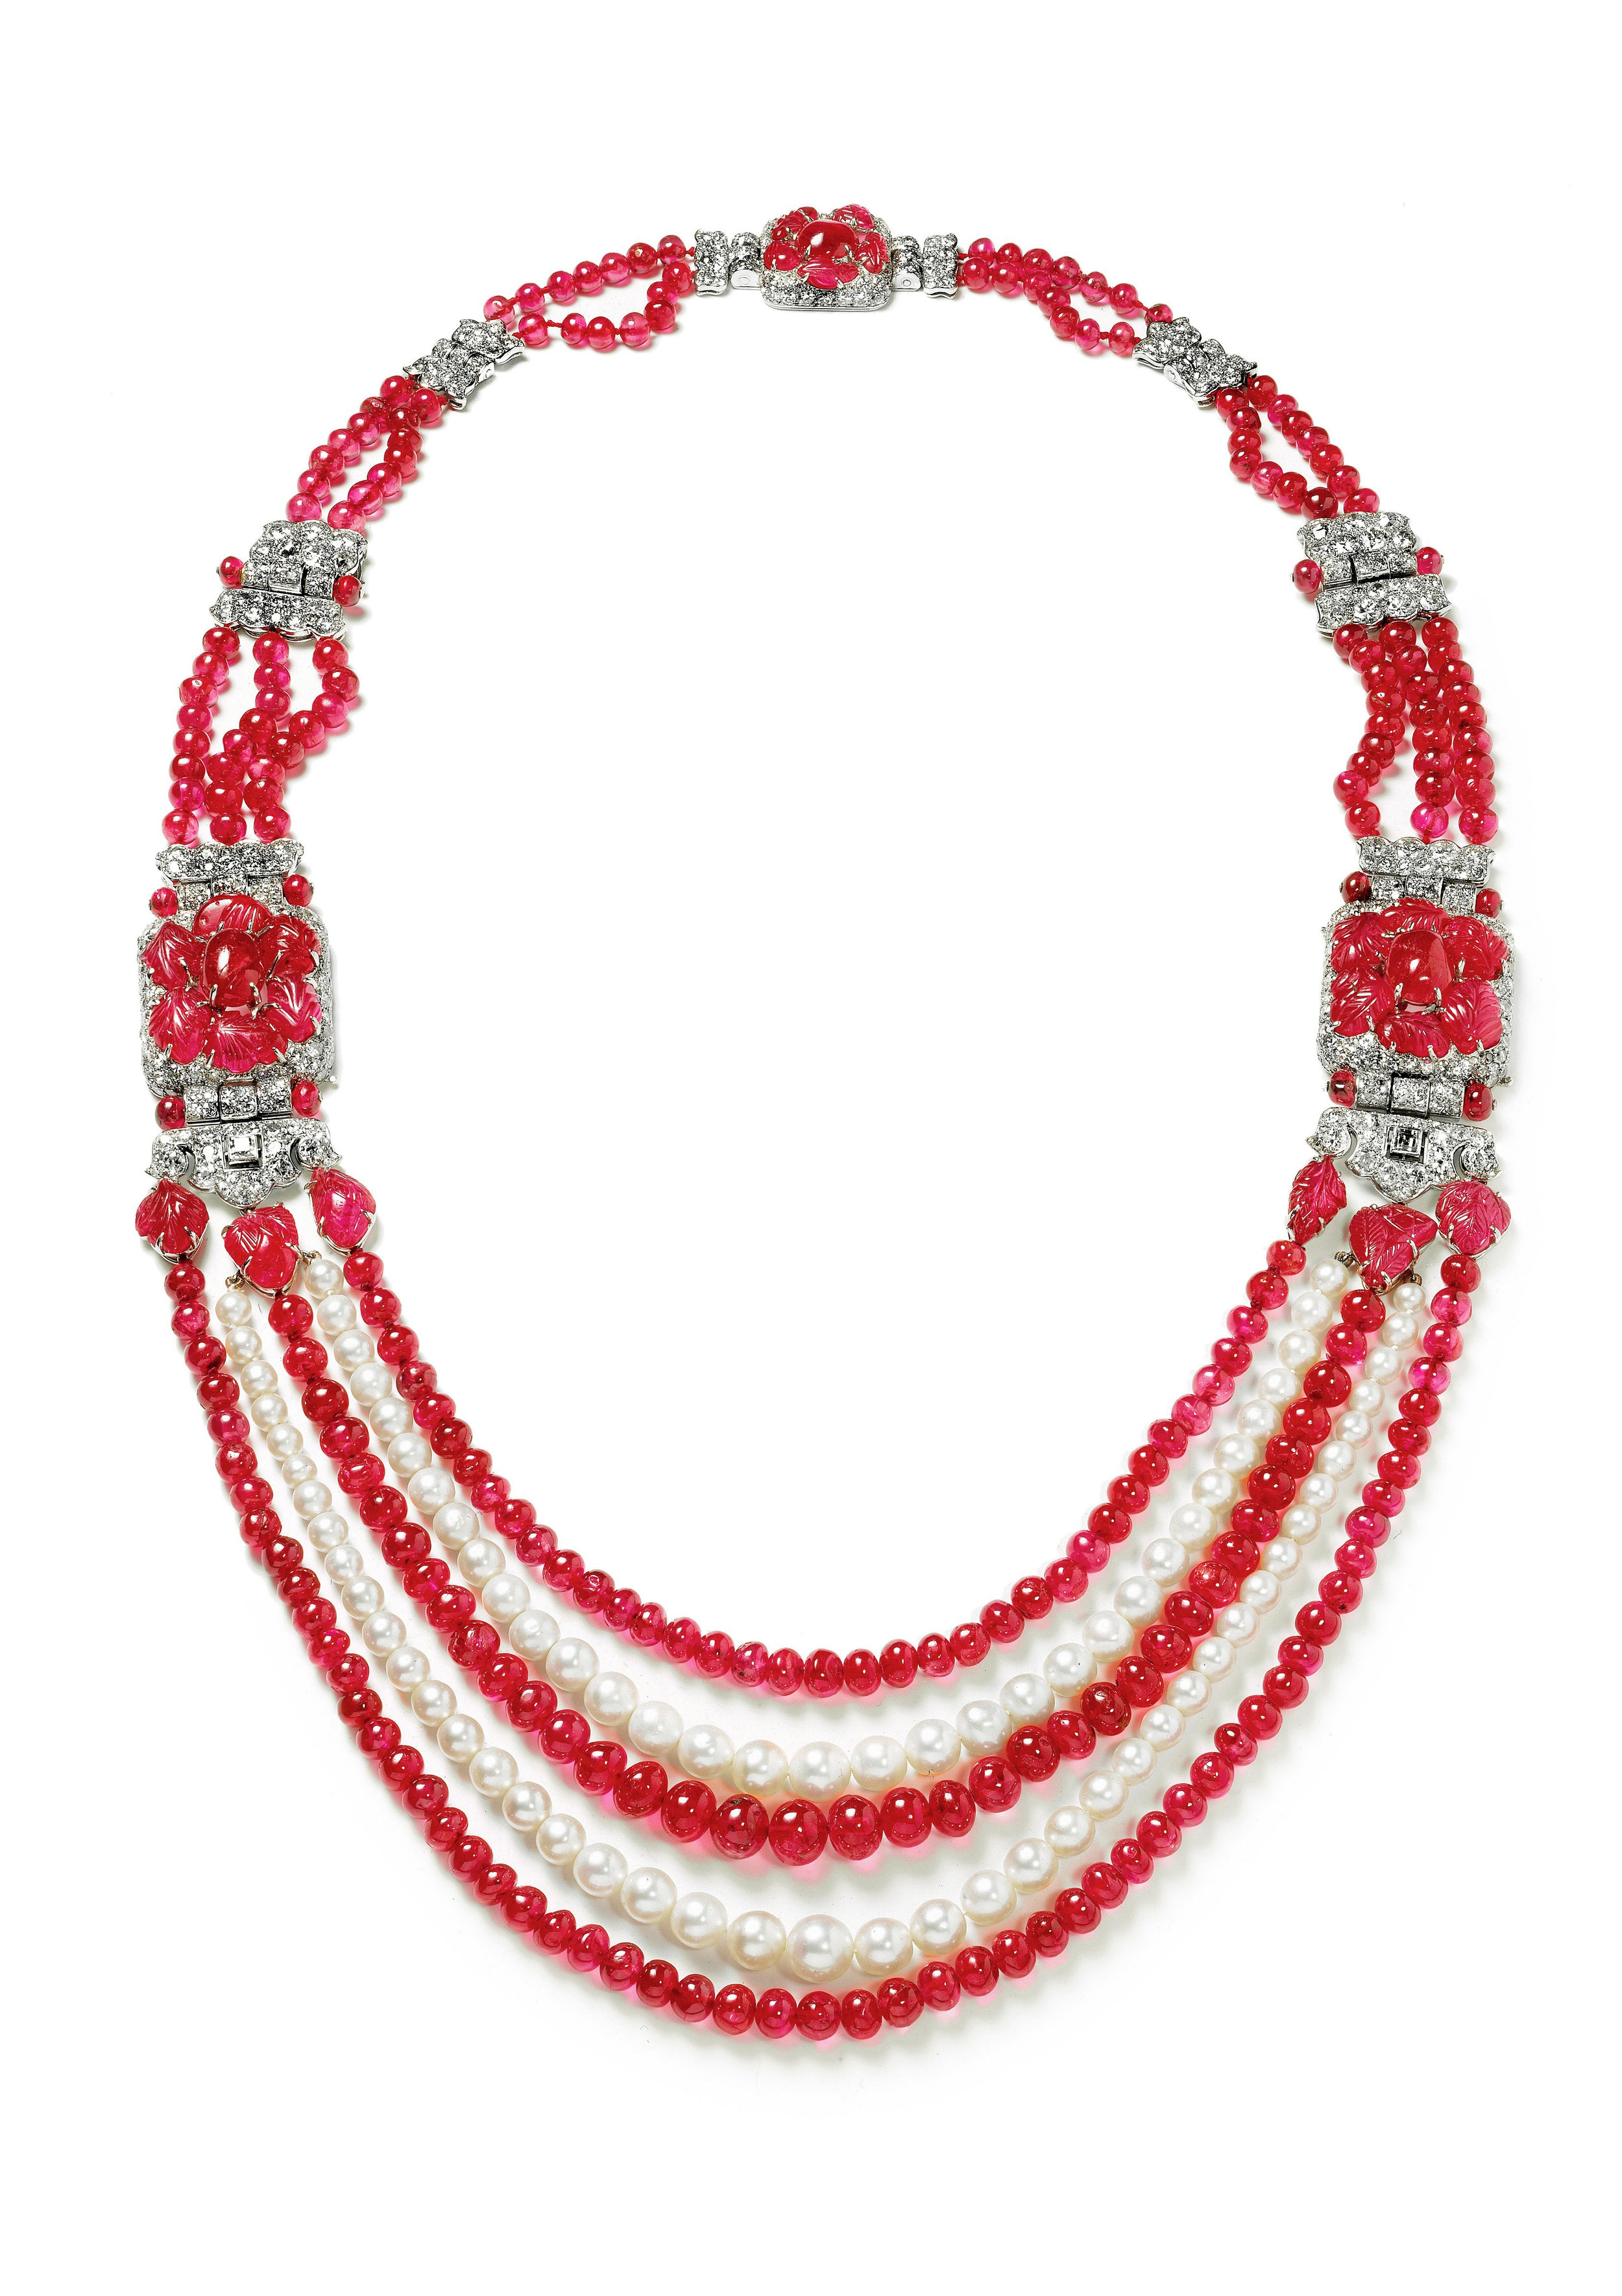 Indian style necklace made by English Art Works for Cartier London and commissioned in 1930 by Mrs C G Lancaster with 76 pearls_Photo by Nick Welsh_© Cartier_from RUBY_published 2017.jpg